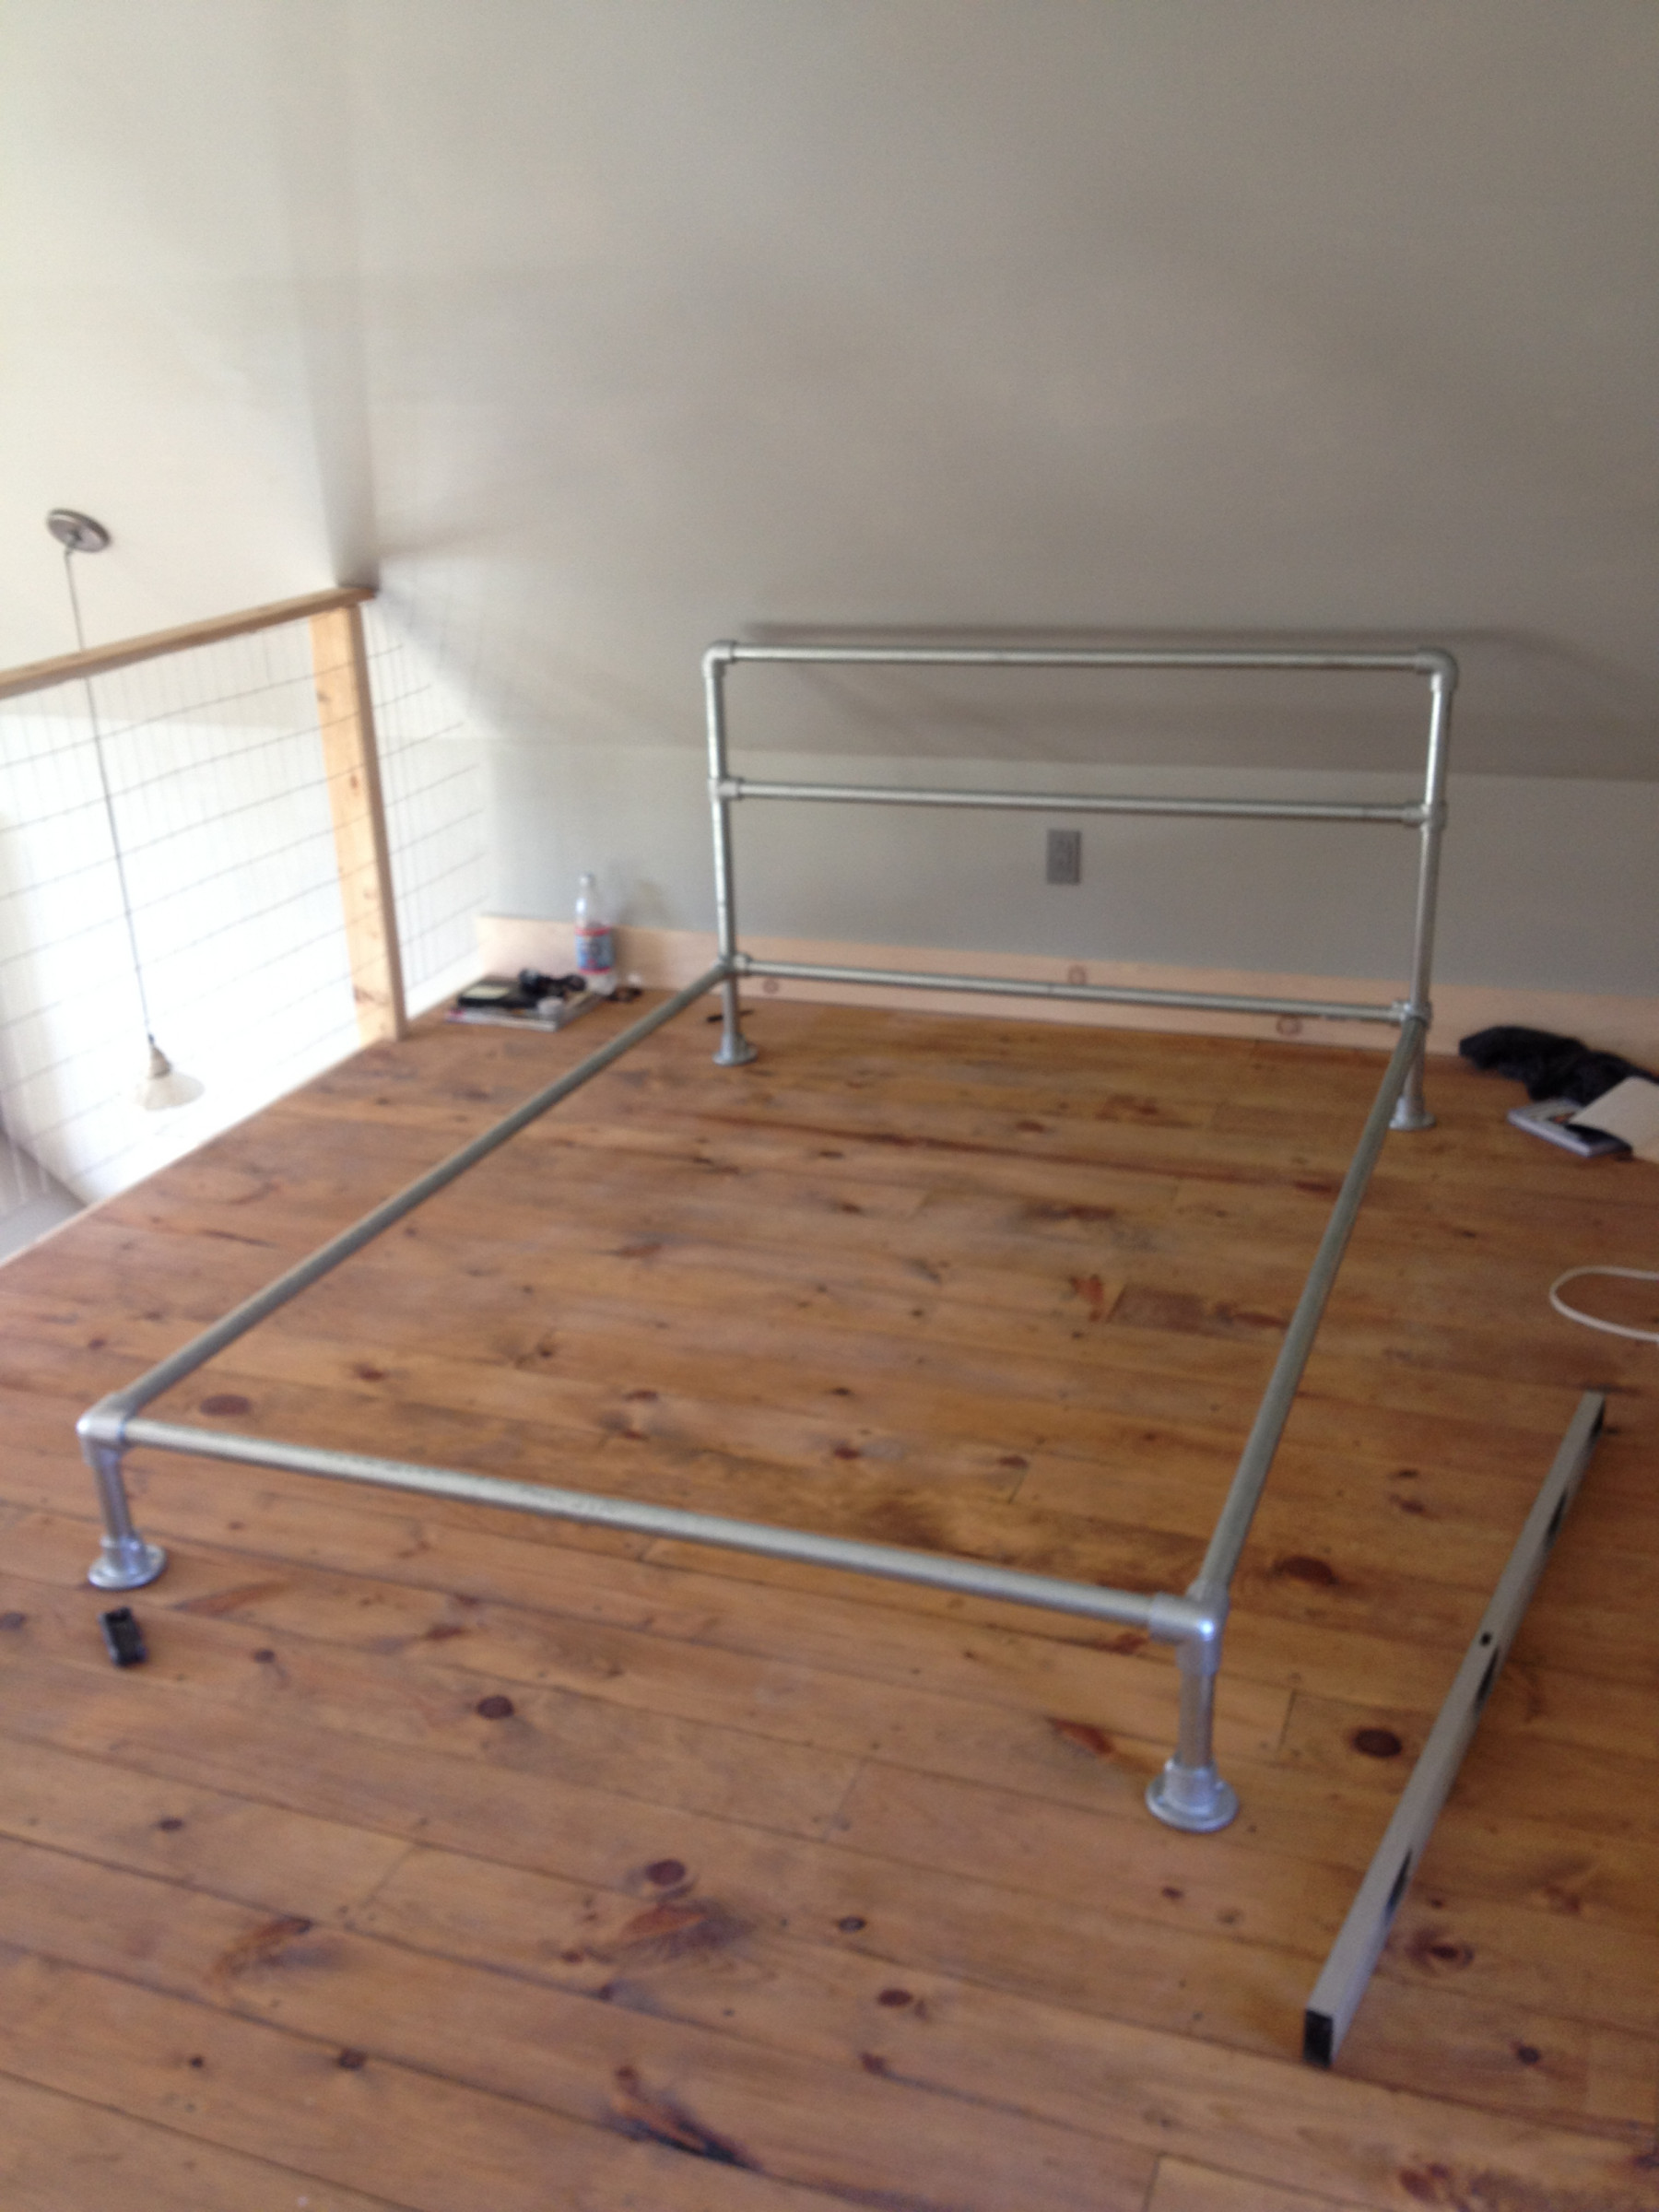 grotime 3 in 1 cot instructions